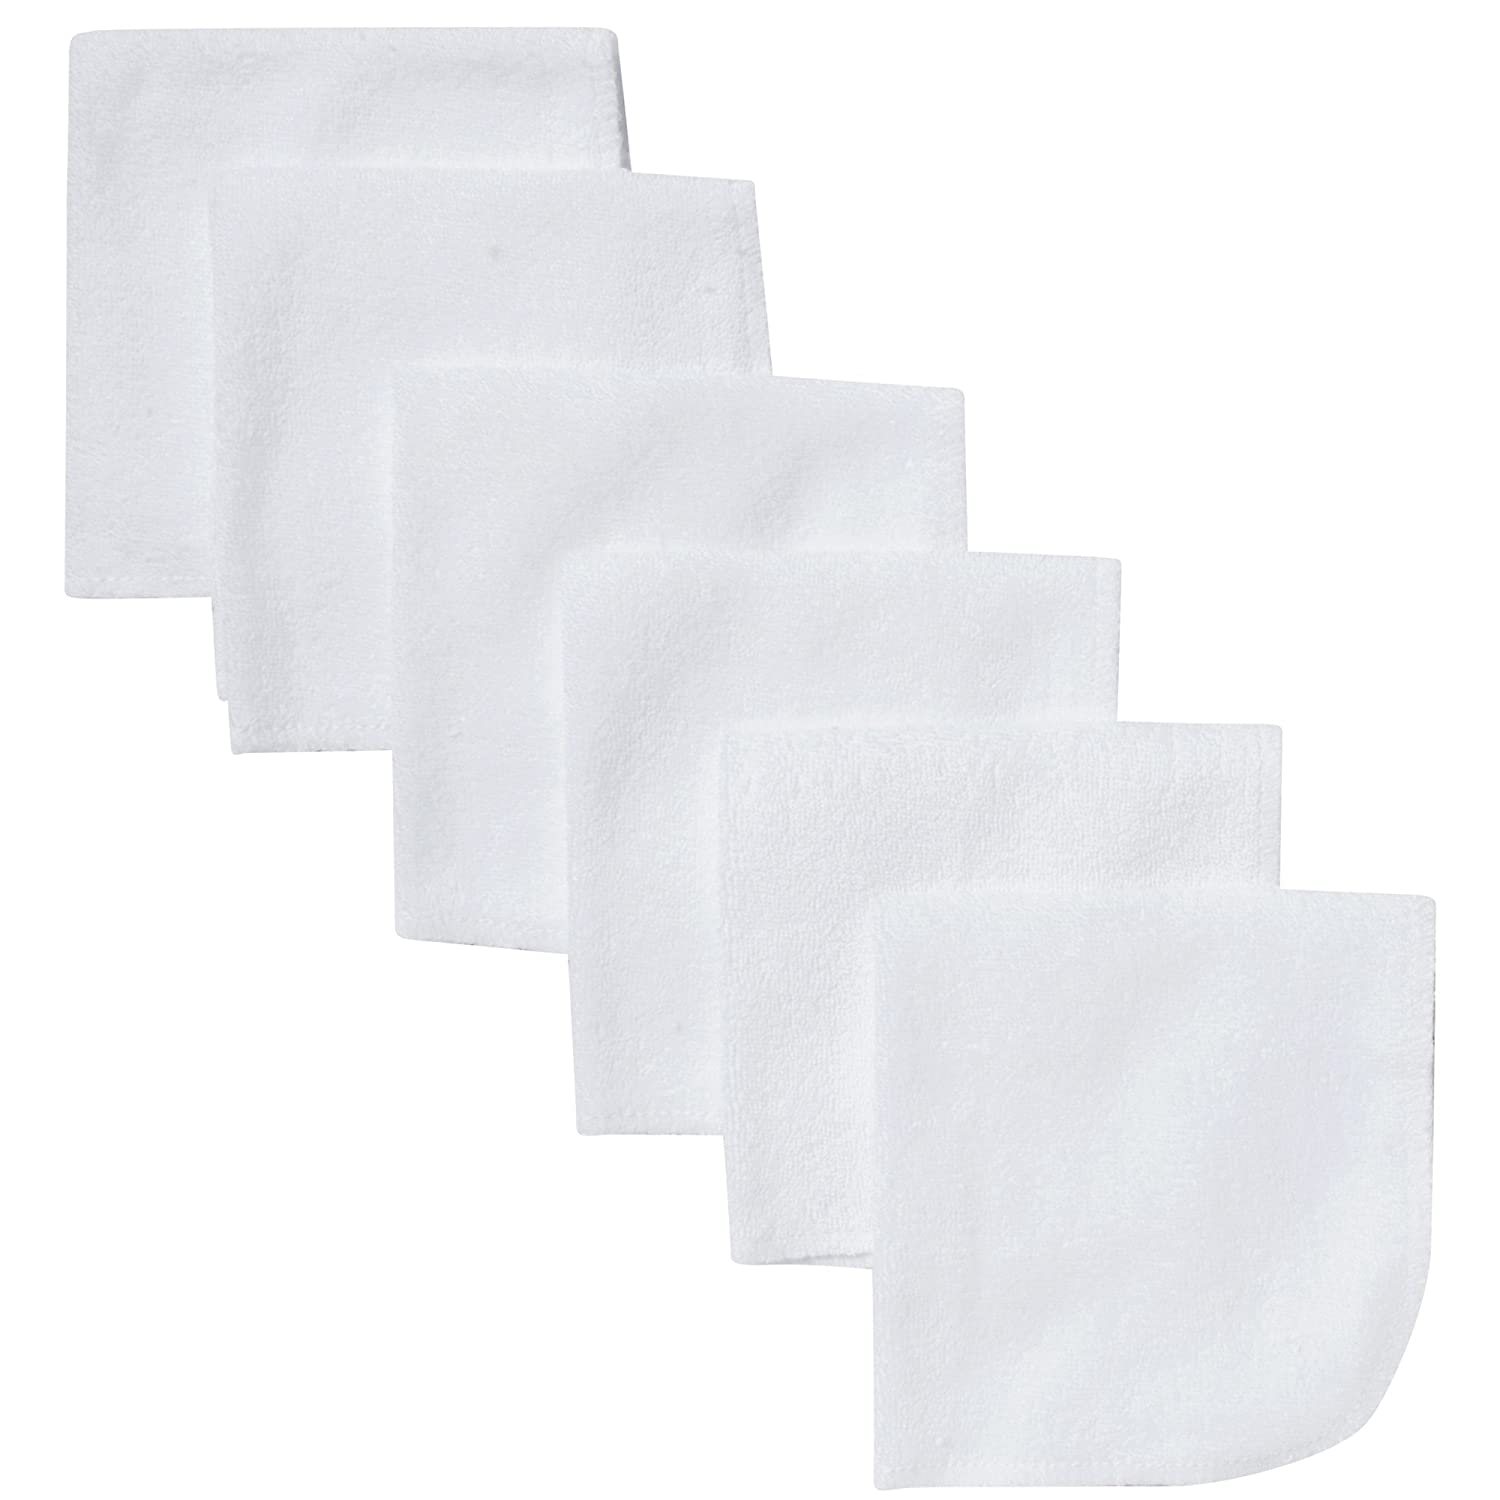 Gerber 6 Count Washcloth, White